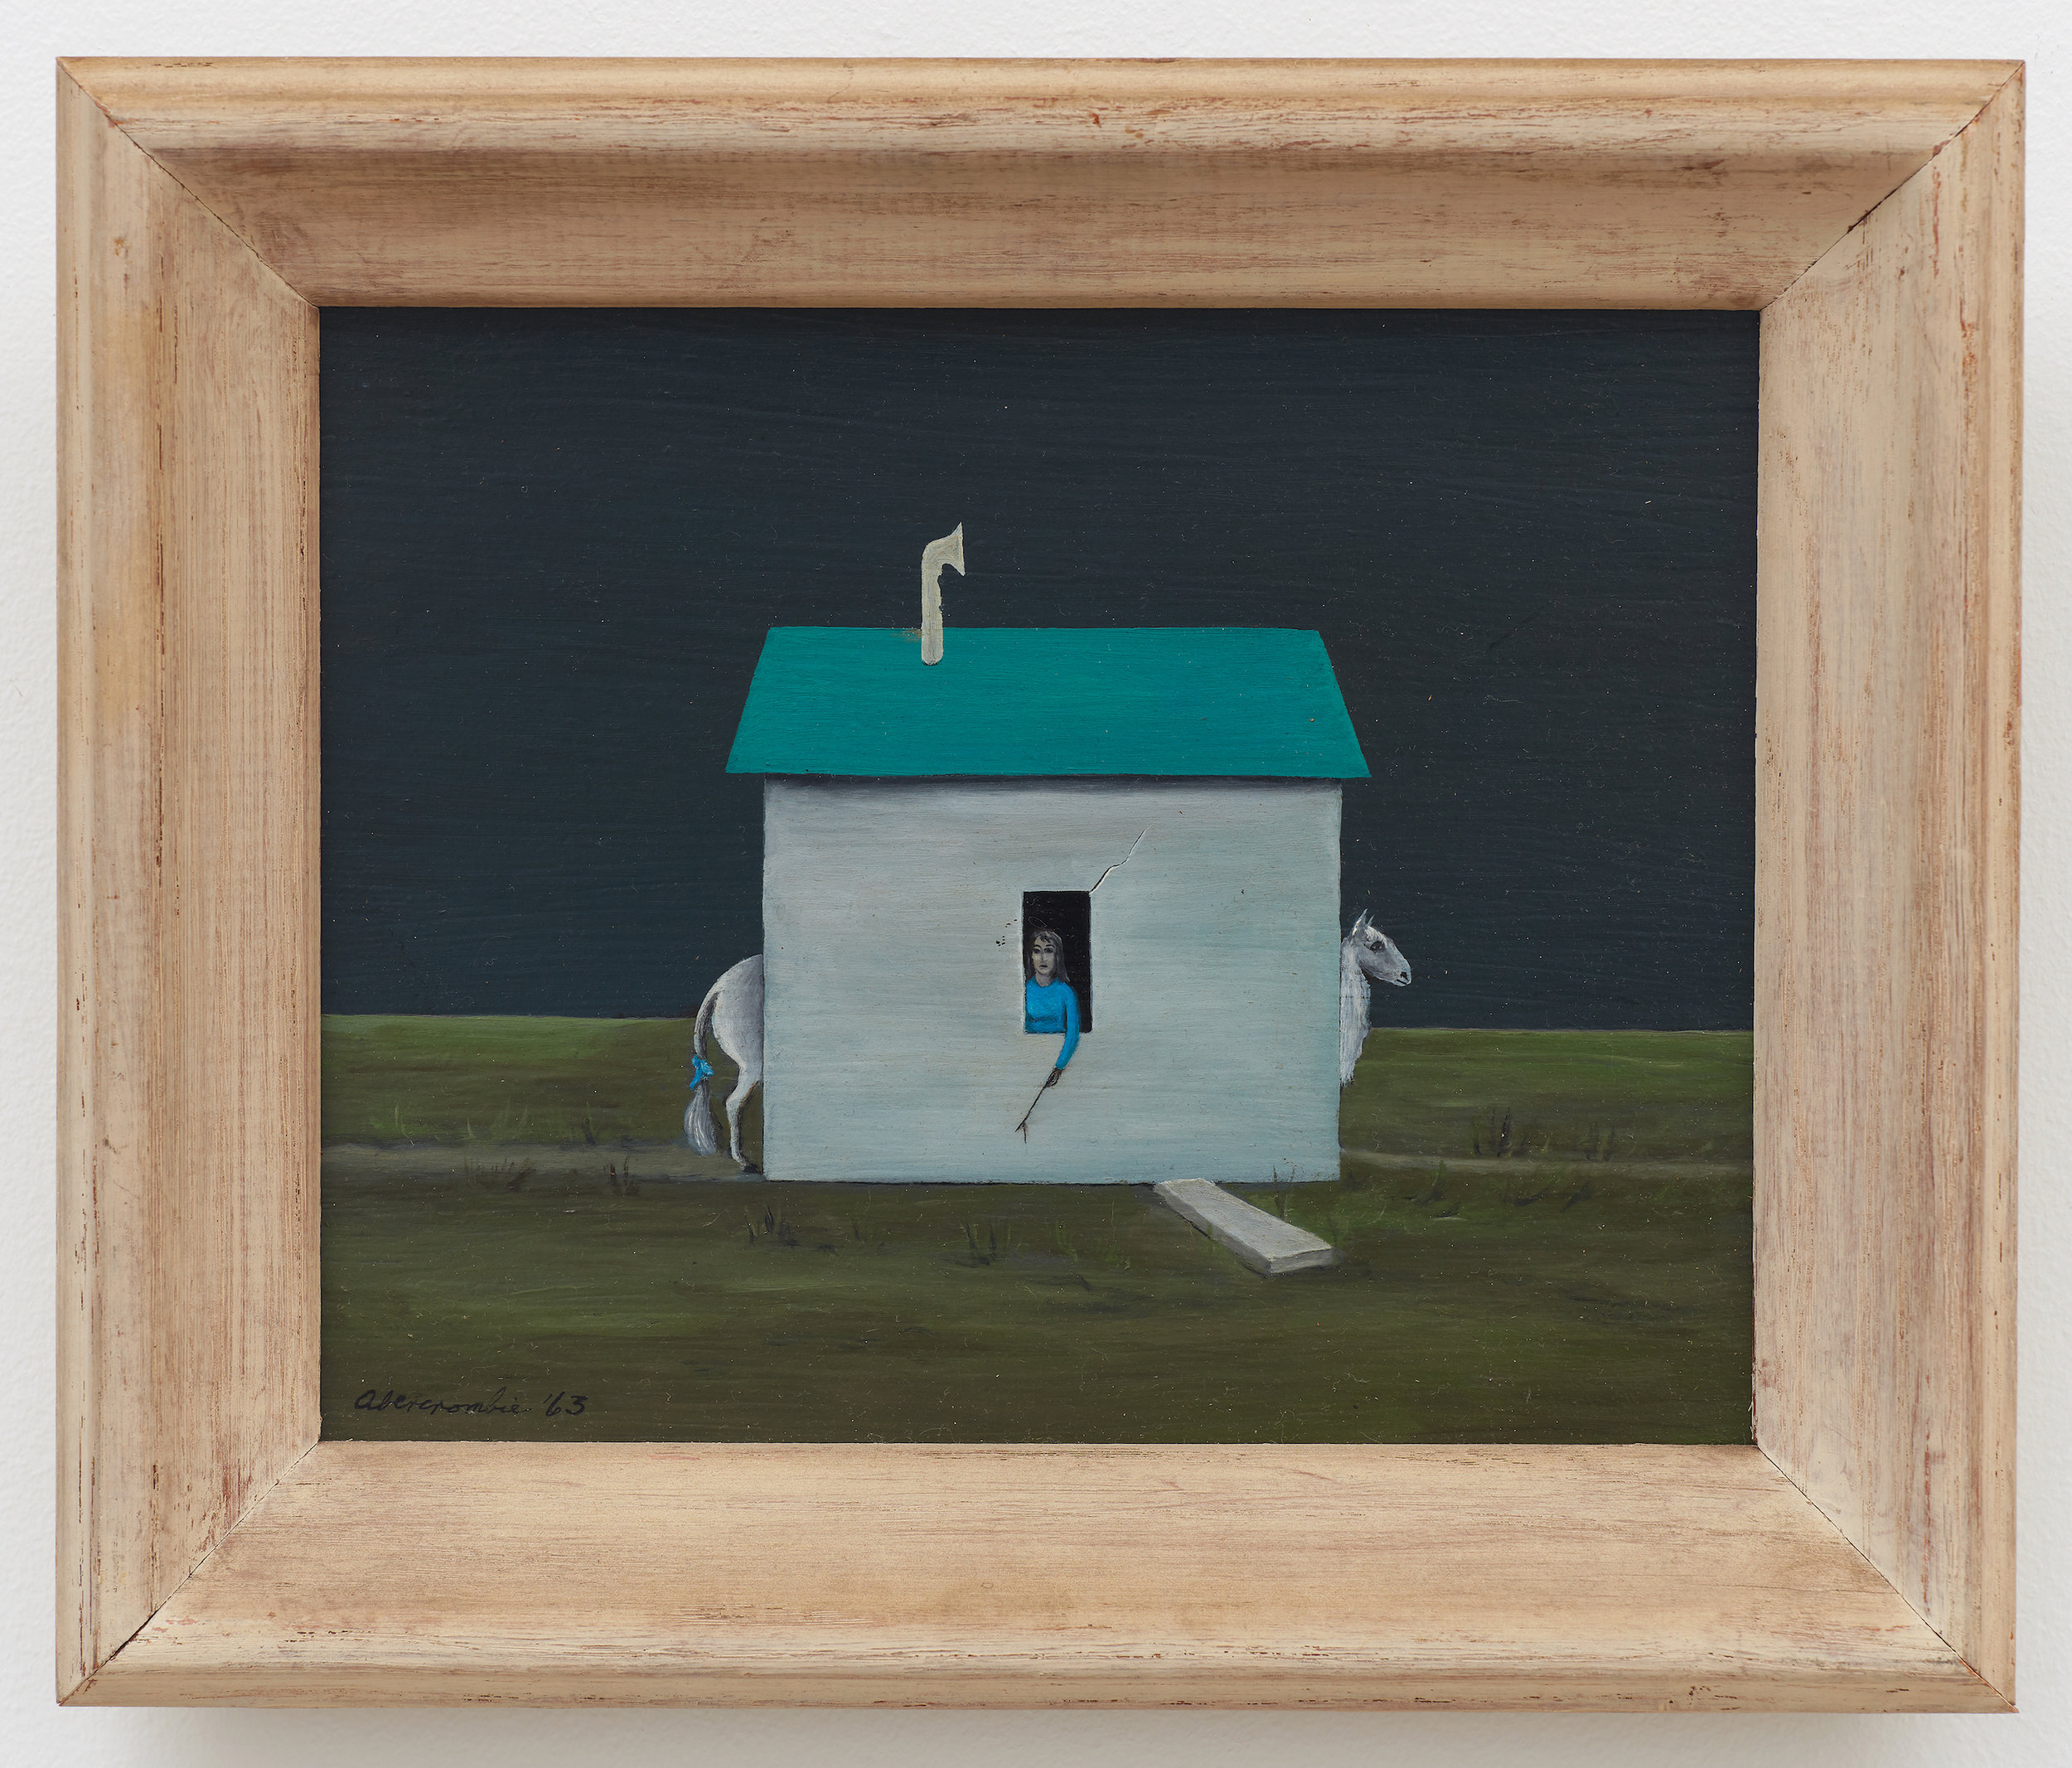 Untitled (Station and Shed),  1963, Oil on board, 7 7/8 × 10 inches (unframed); 10 3/4 × 12 3/4 inches (framed). Private collection.